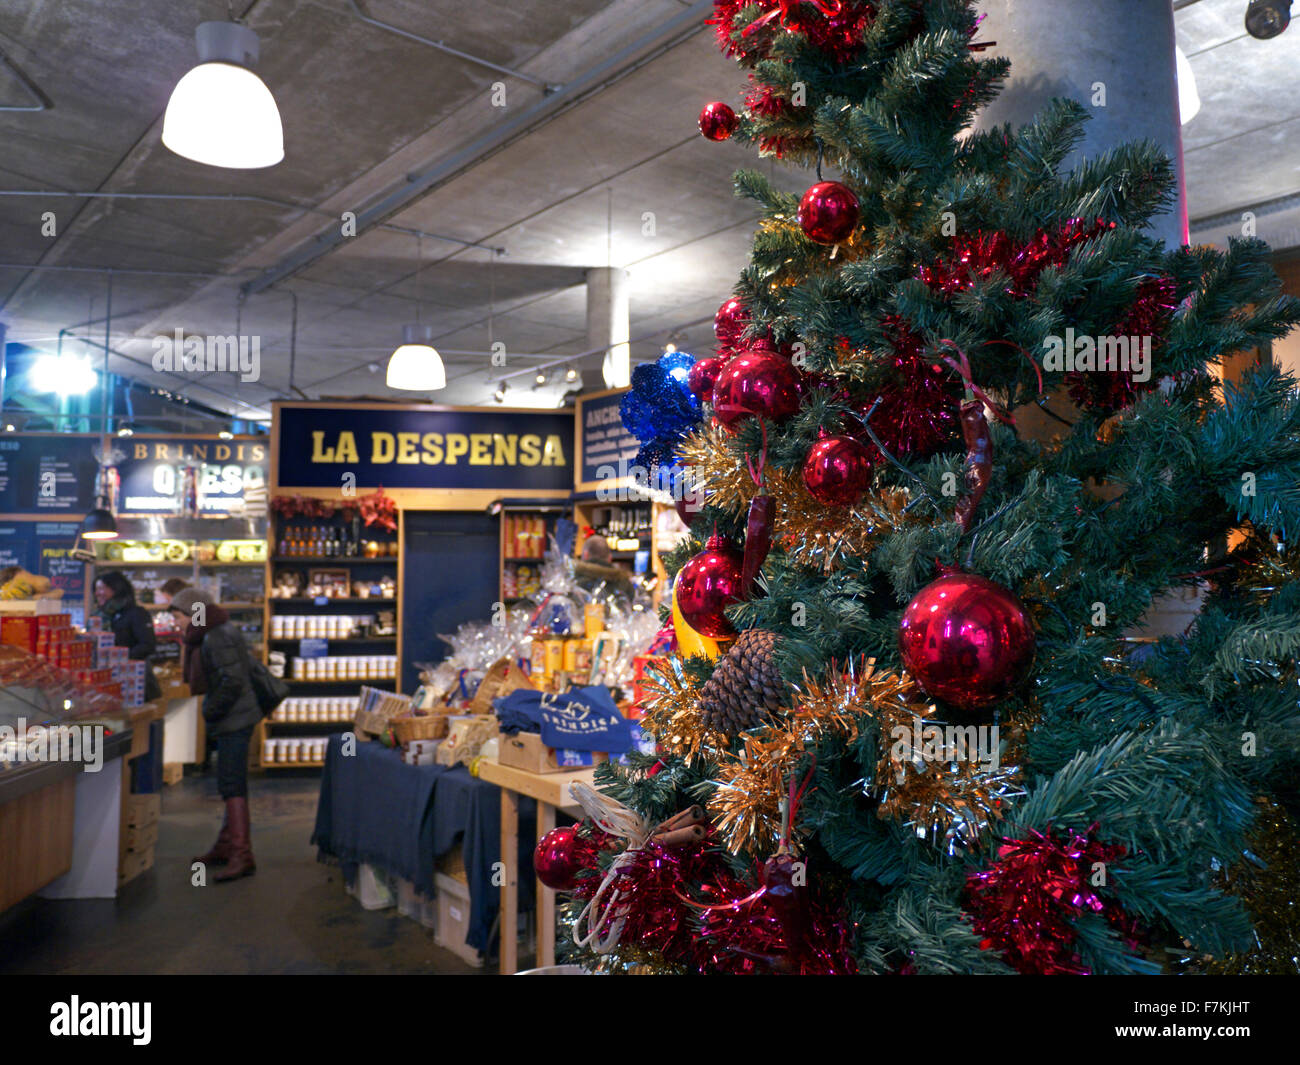 la dispensa italian delicatessen shop store at borough market with christmas decorations london uk